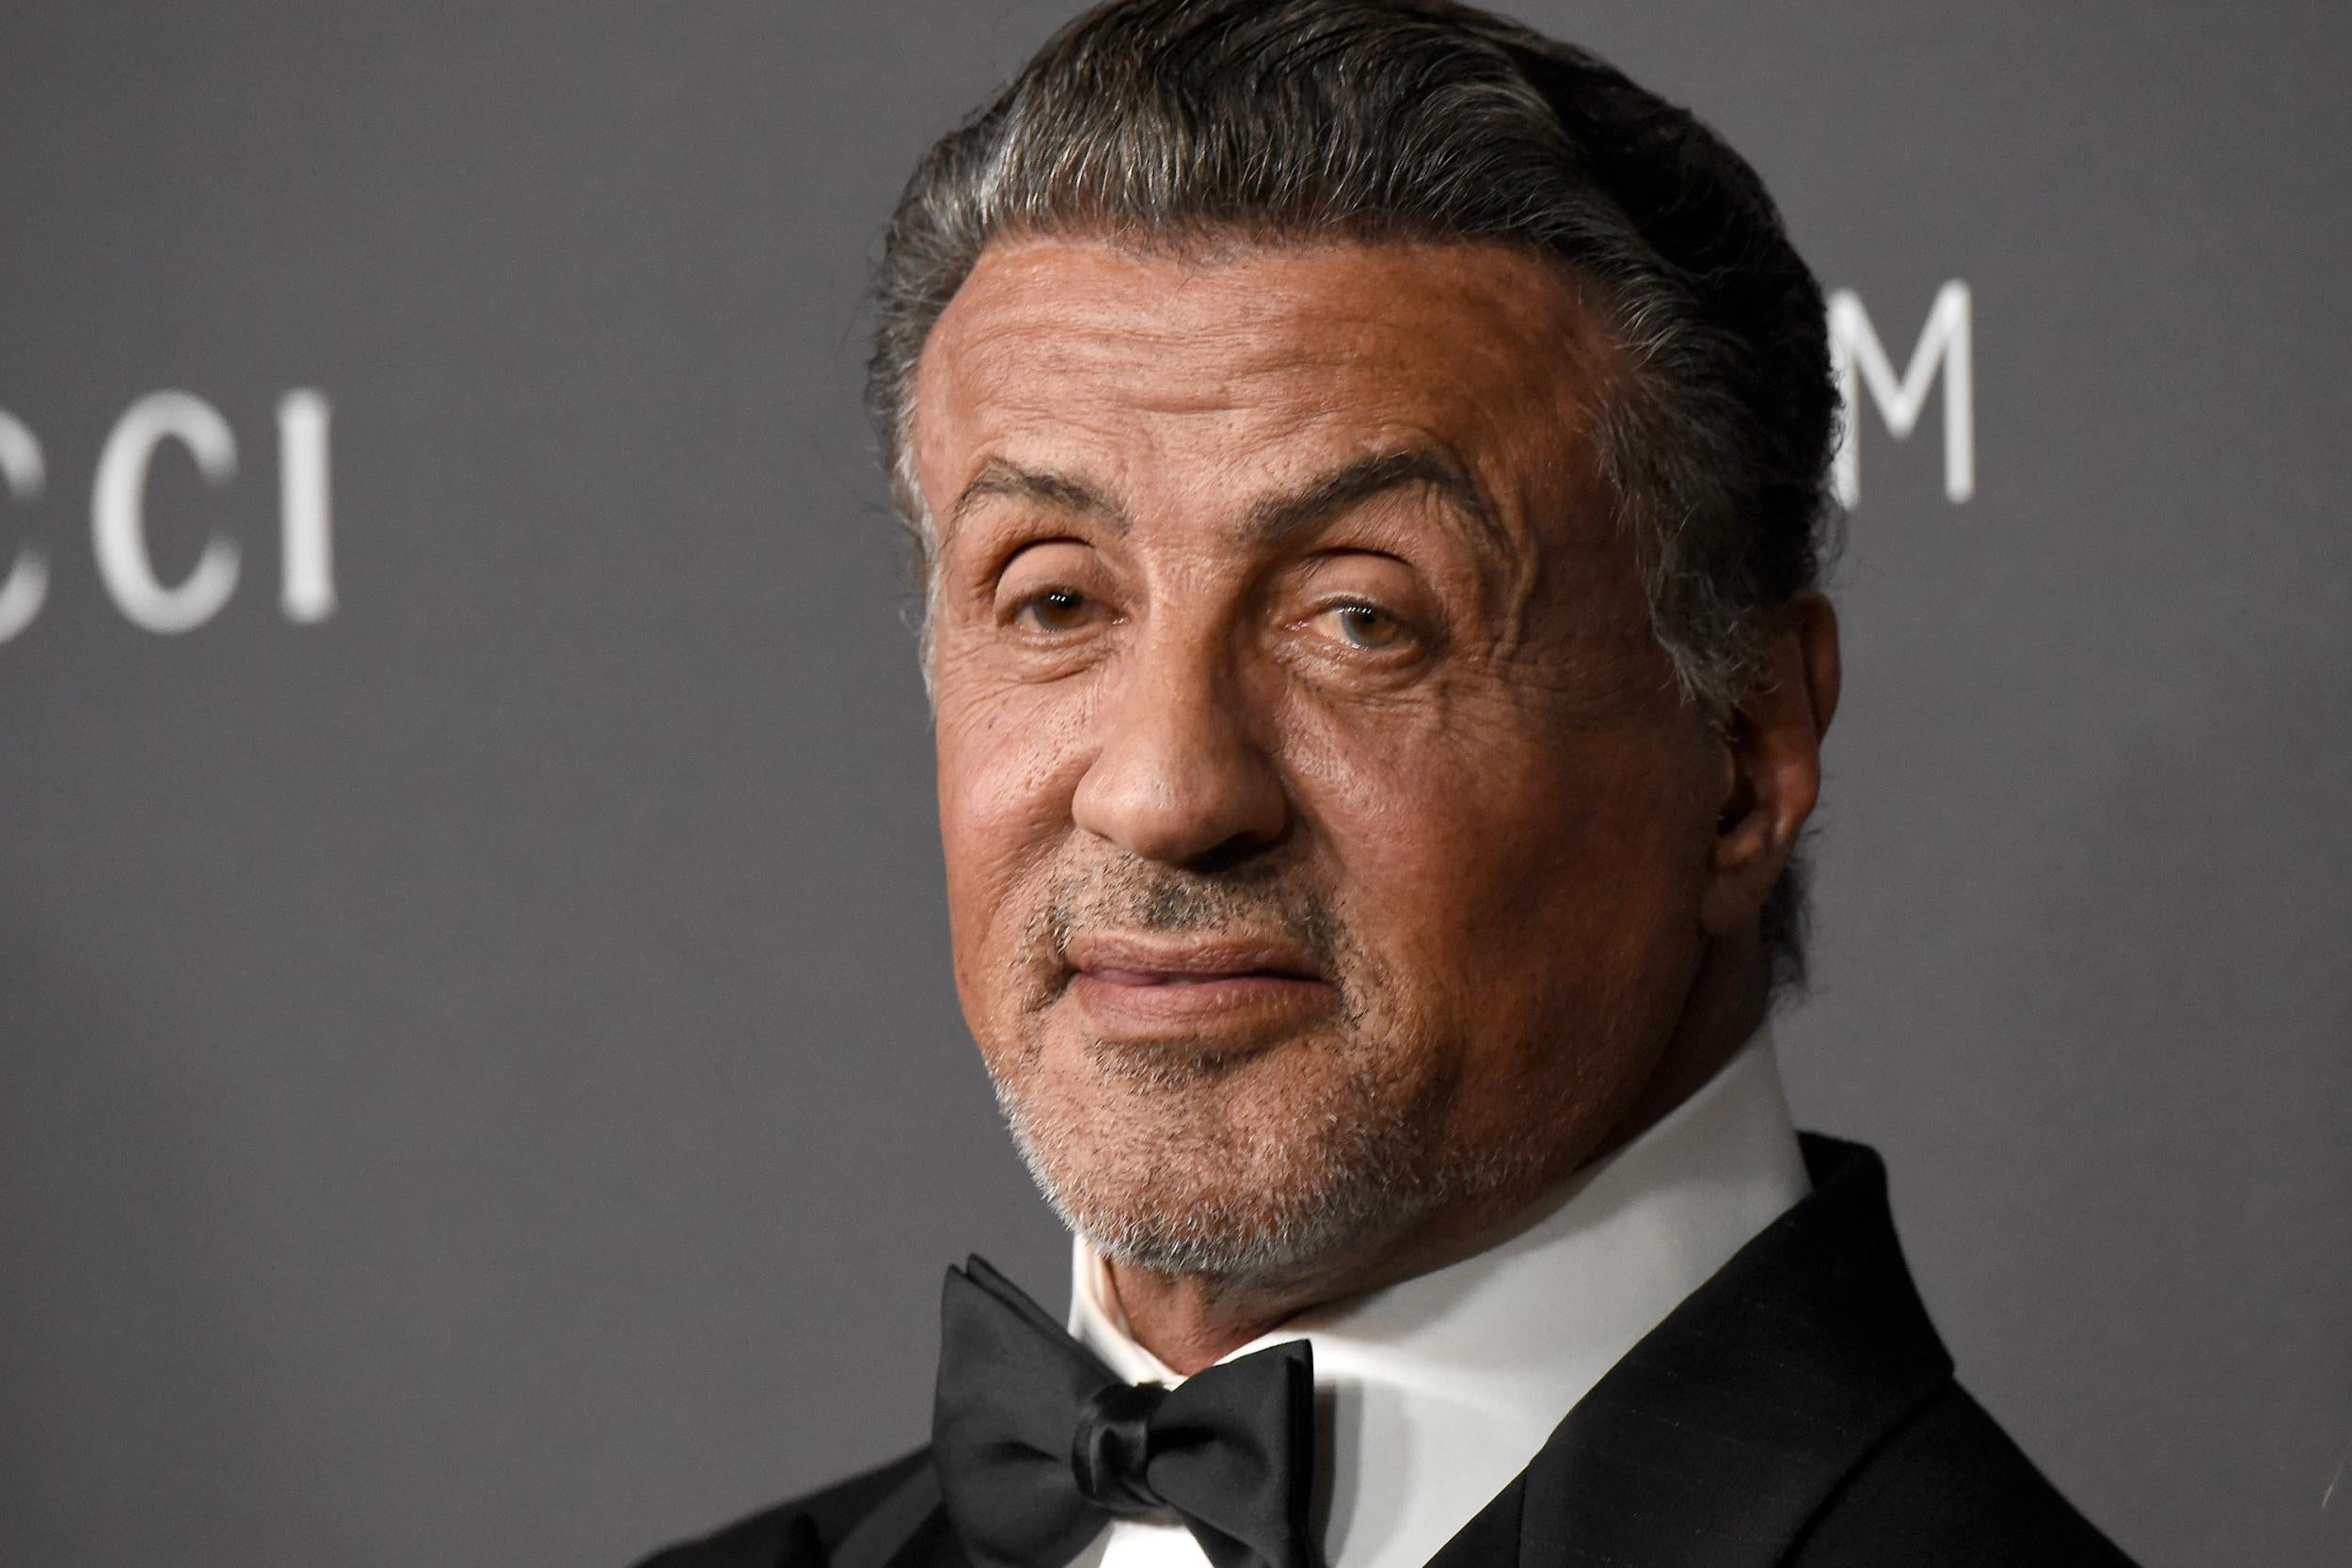 Buried, but still alive: Stallone denied rumors of his death